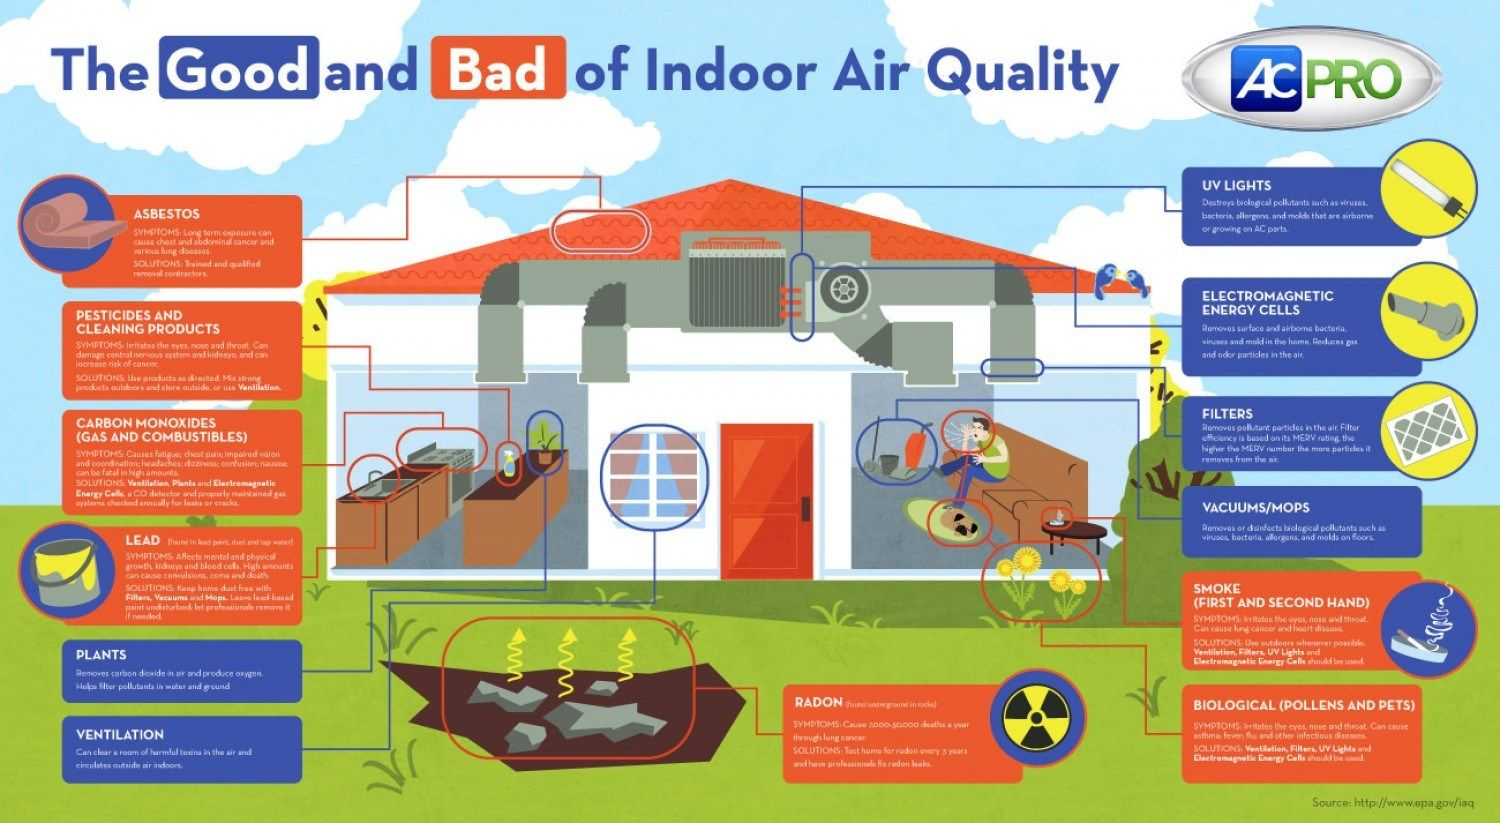 Indoor Air Quality Why It Is Important Bindu Gopal Rao Freelance Writer Photographer Indoor Air Indoor Air Quality Air Quality